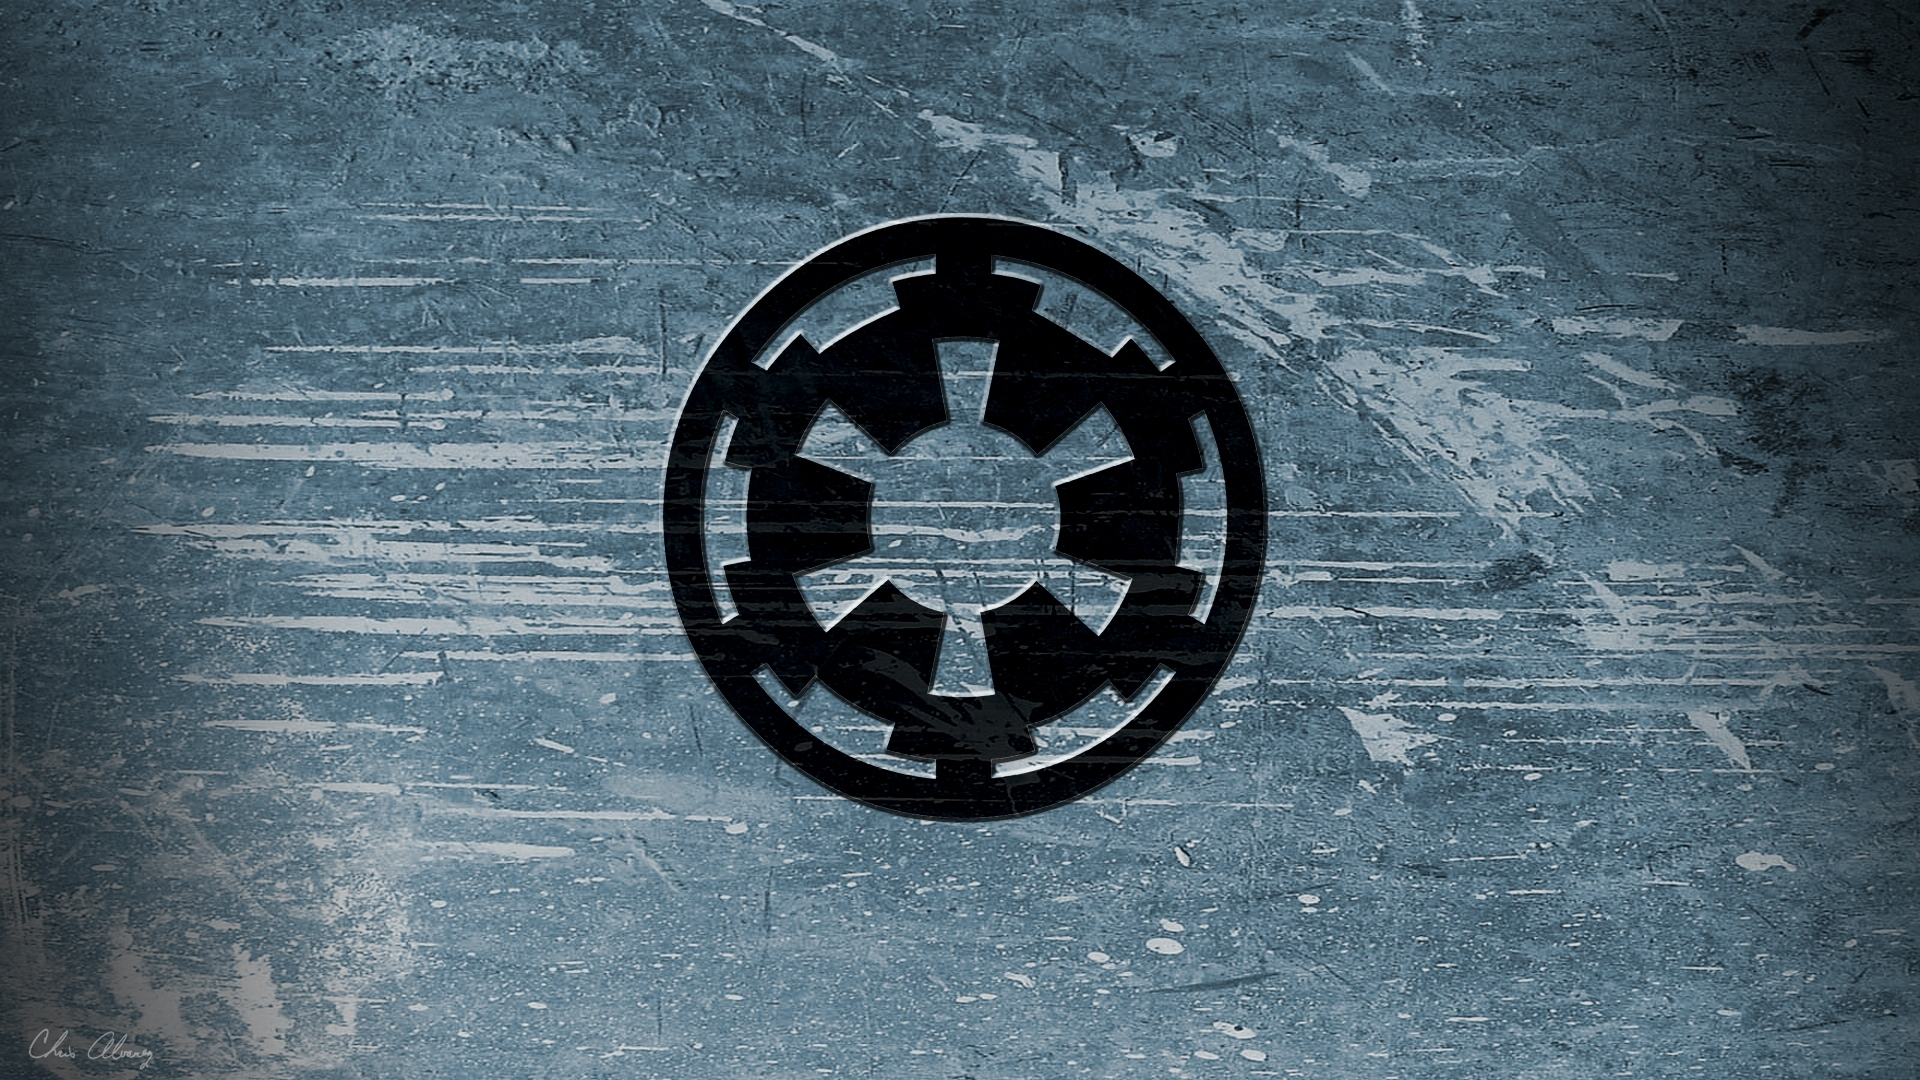 10 Latest Star Wars Imperial Symbol Wallpaper FULL HD 1920×1080 For